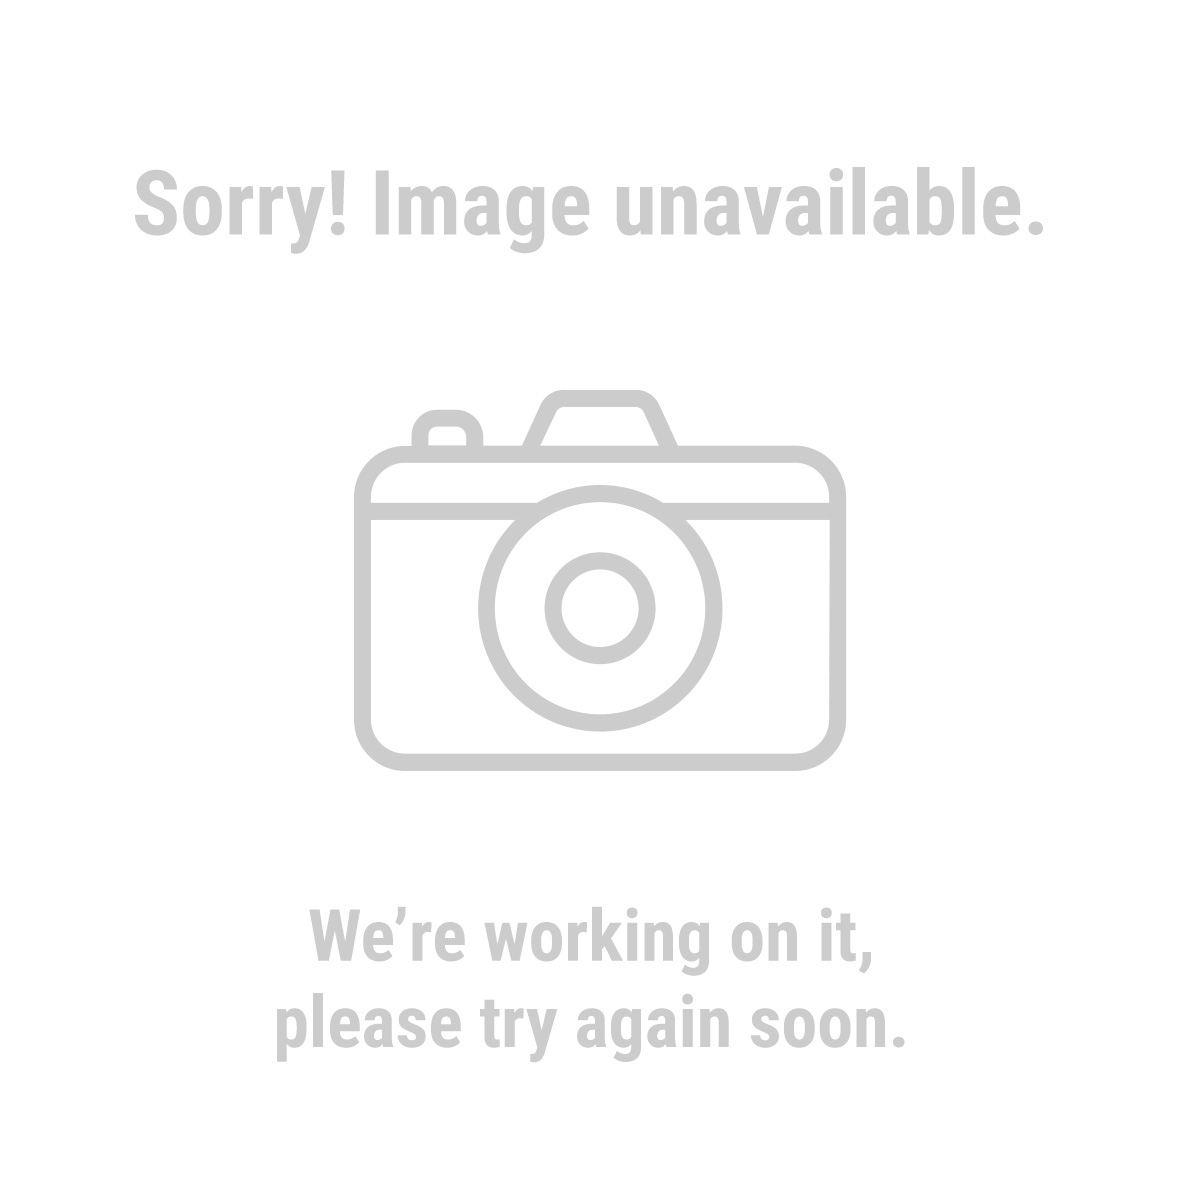 Chain hoist low sale prices on this 1 ton chain hoist compression test kit 8 pc sciox Gallery